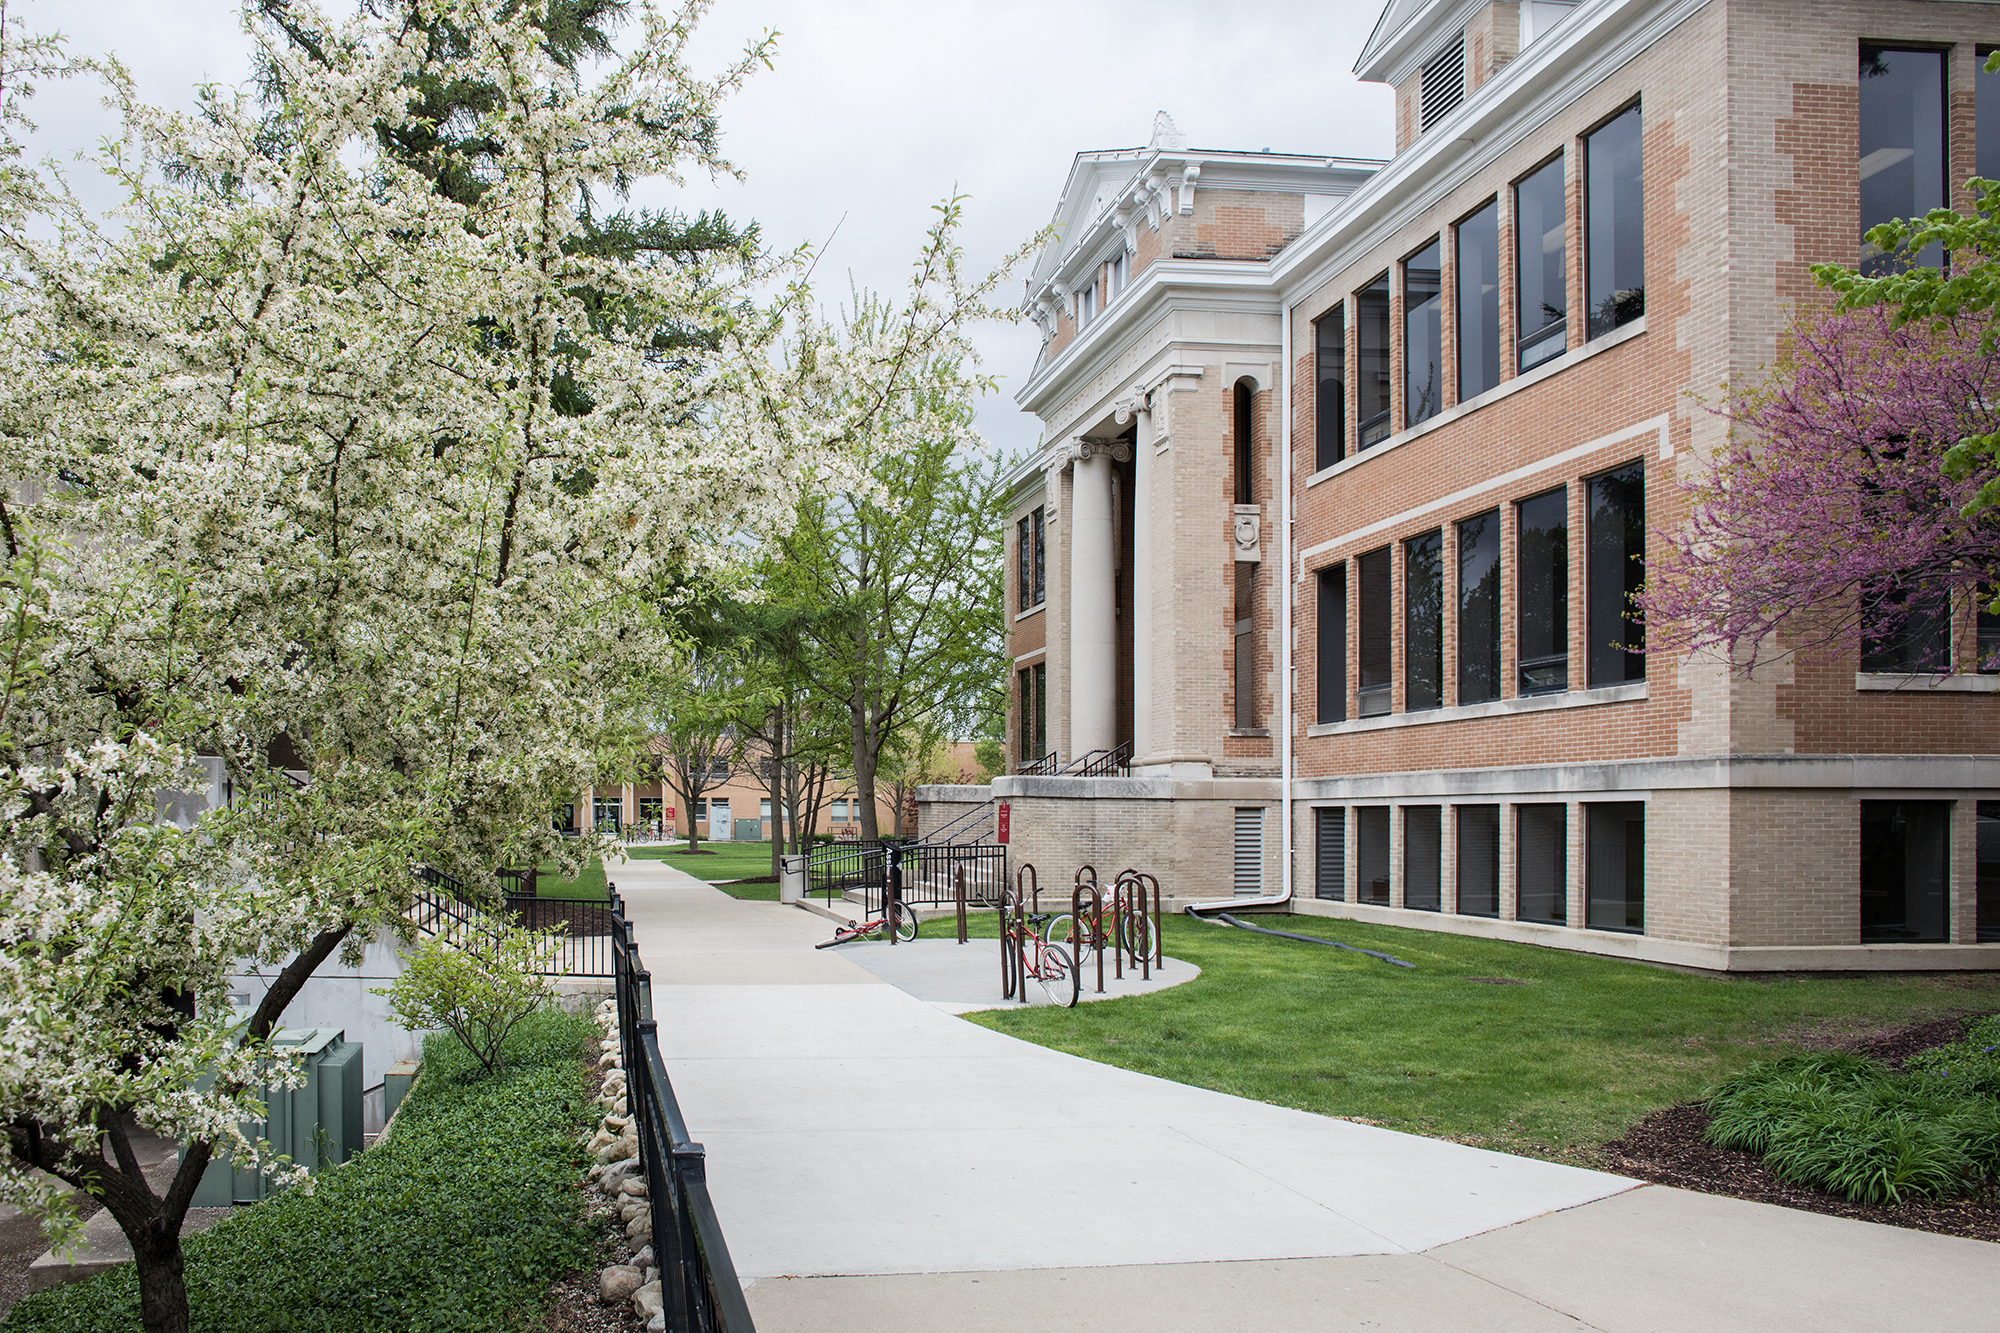 Student walkway at North Central College